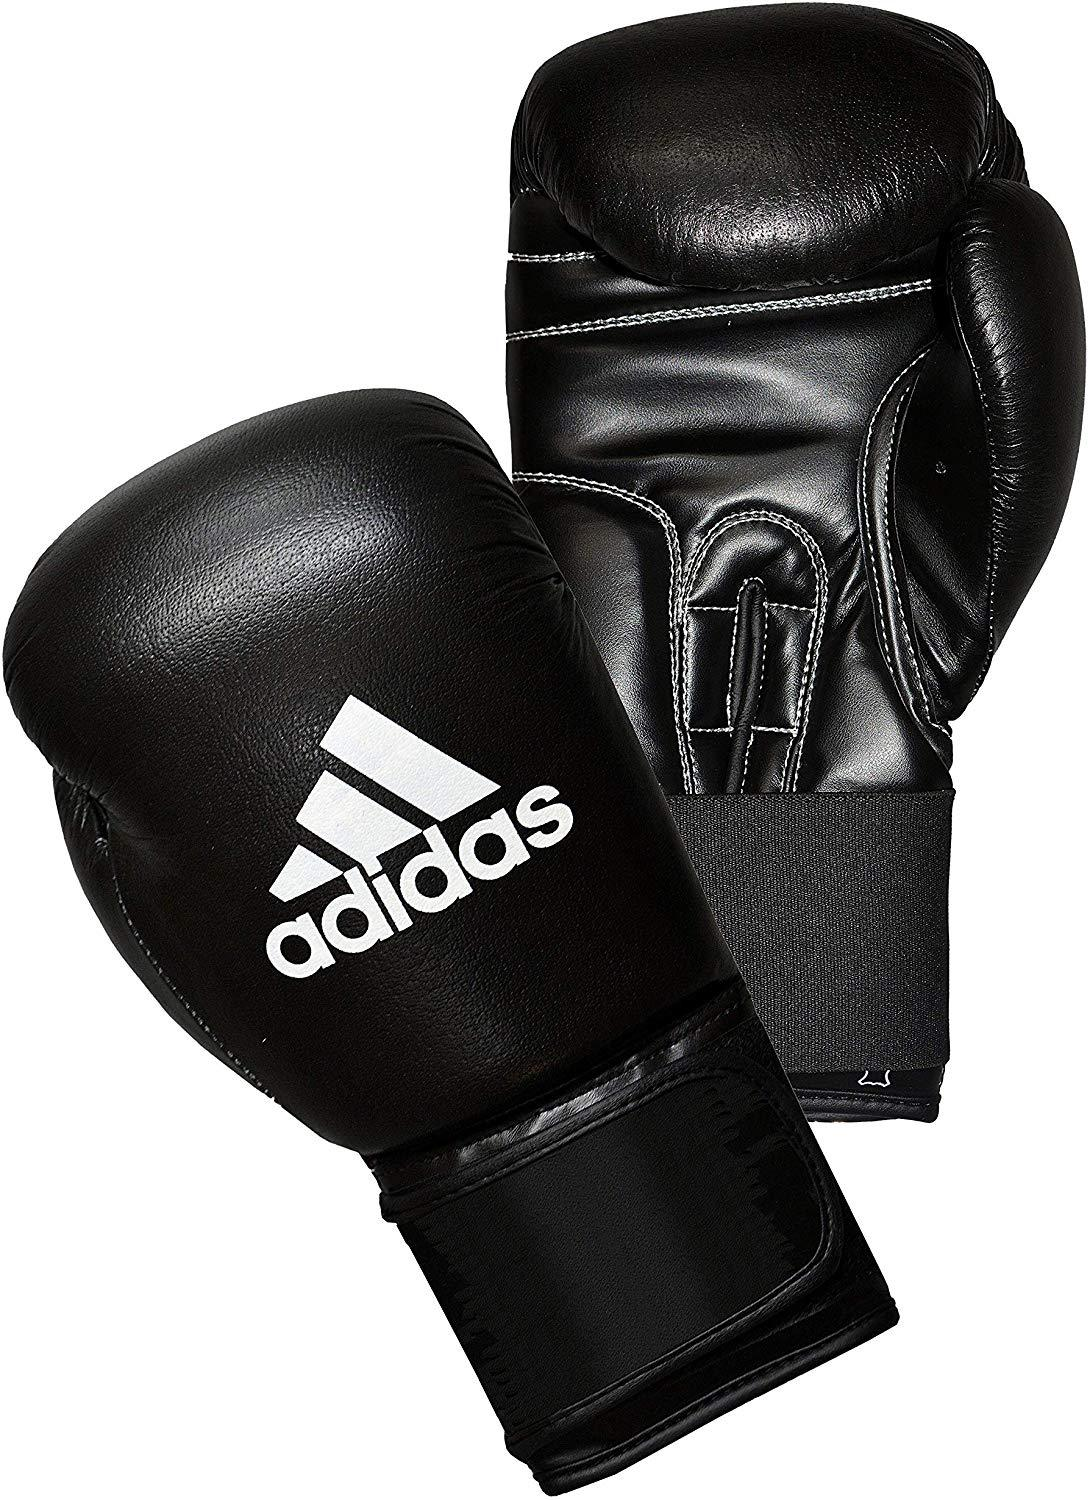 Adidas Boxing Leather Performer Boxing Gloves - Black Boxing SportsPower Geelong